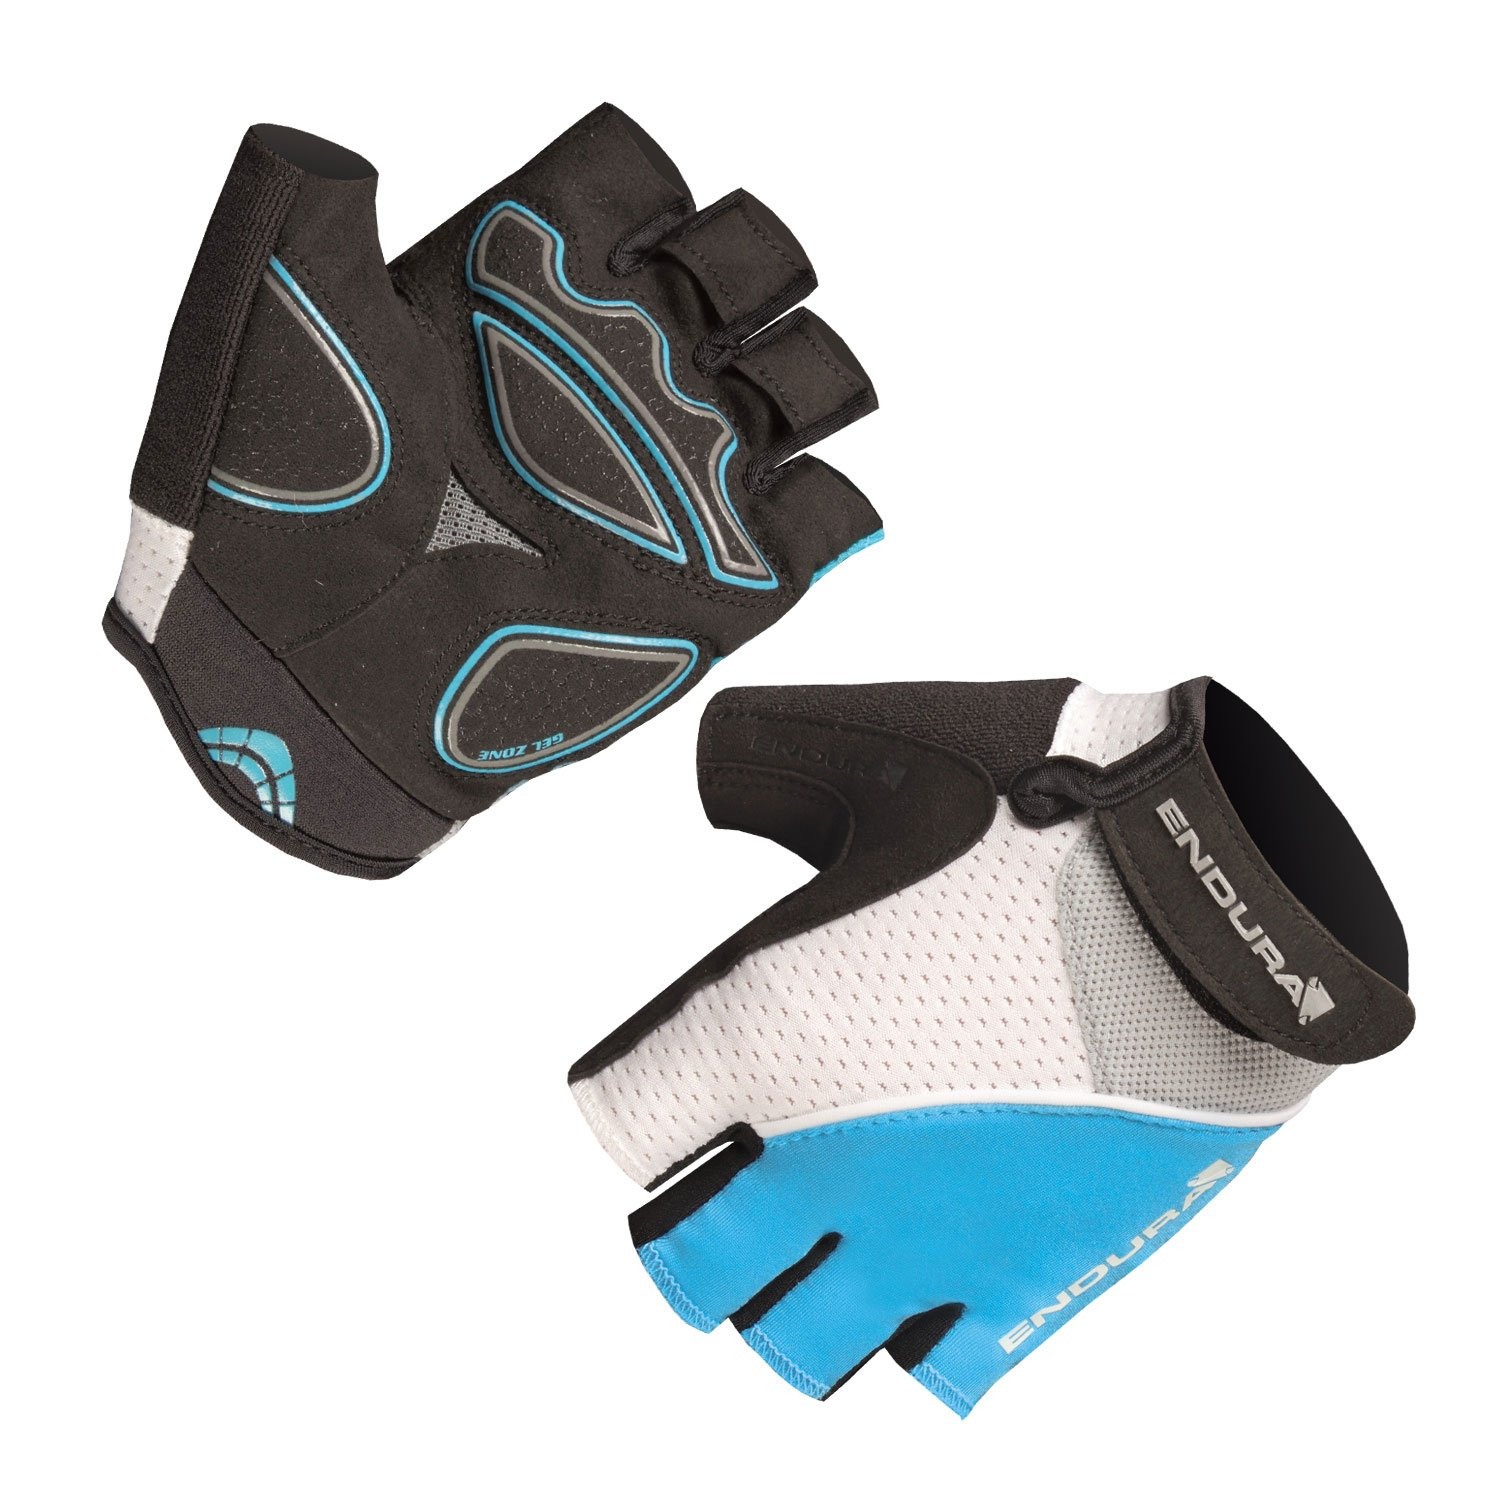 Endura Womens Xtract Mitt Cycling Glove